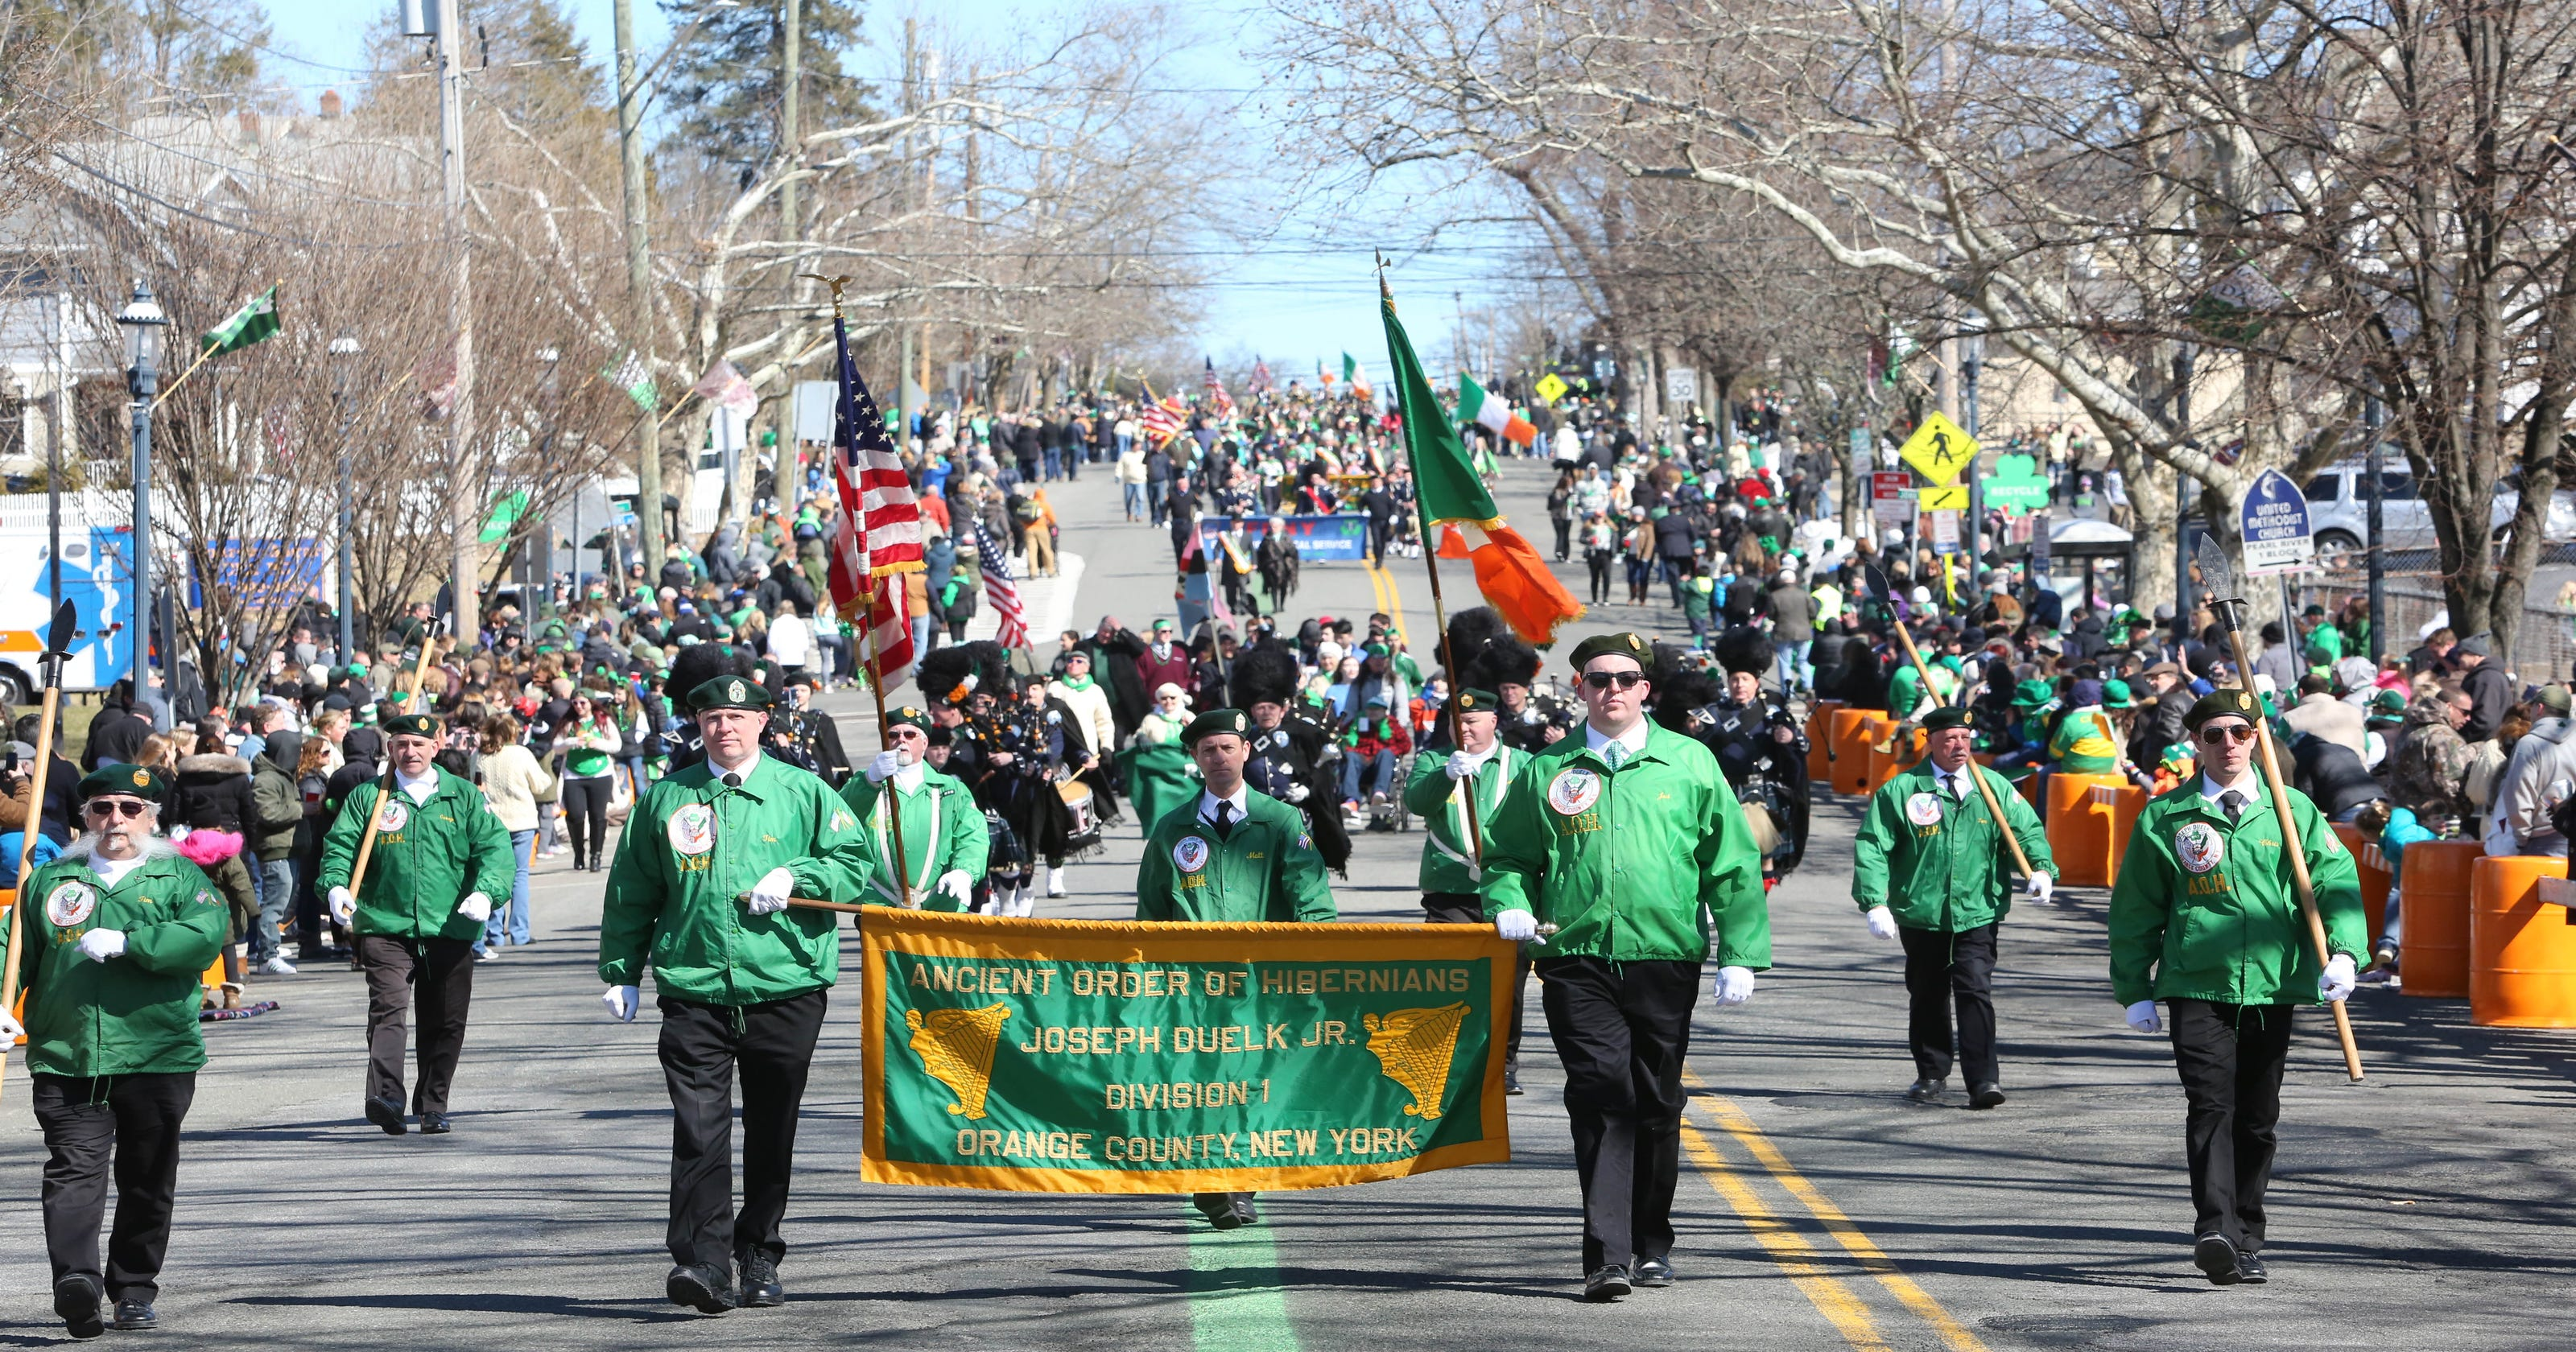 Weekend St. Patrick's Day parade forecast